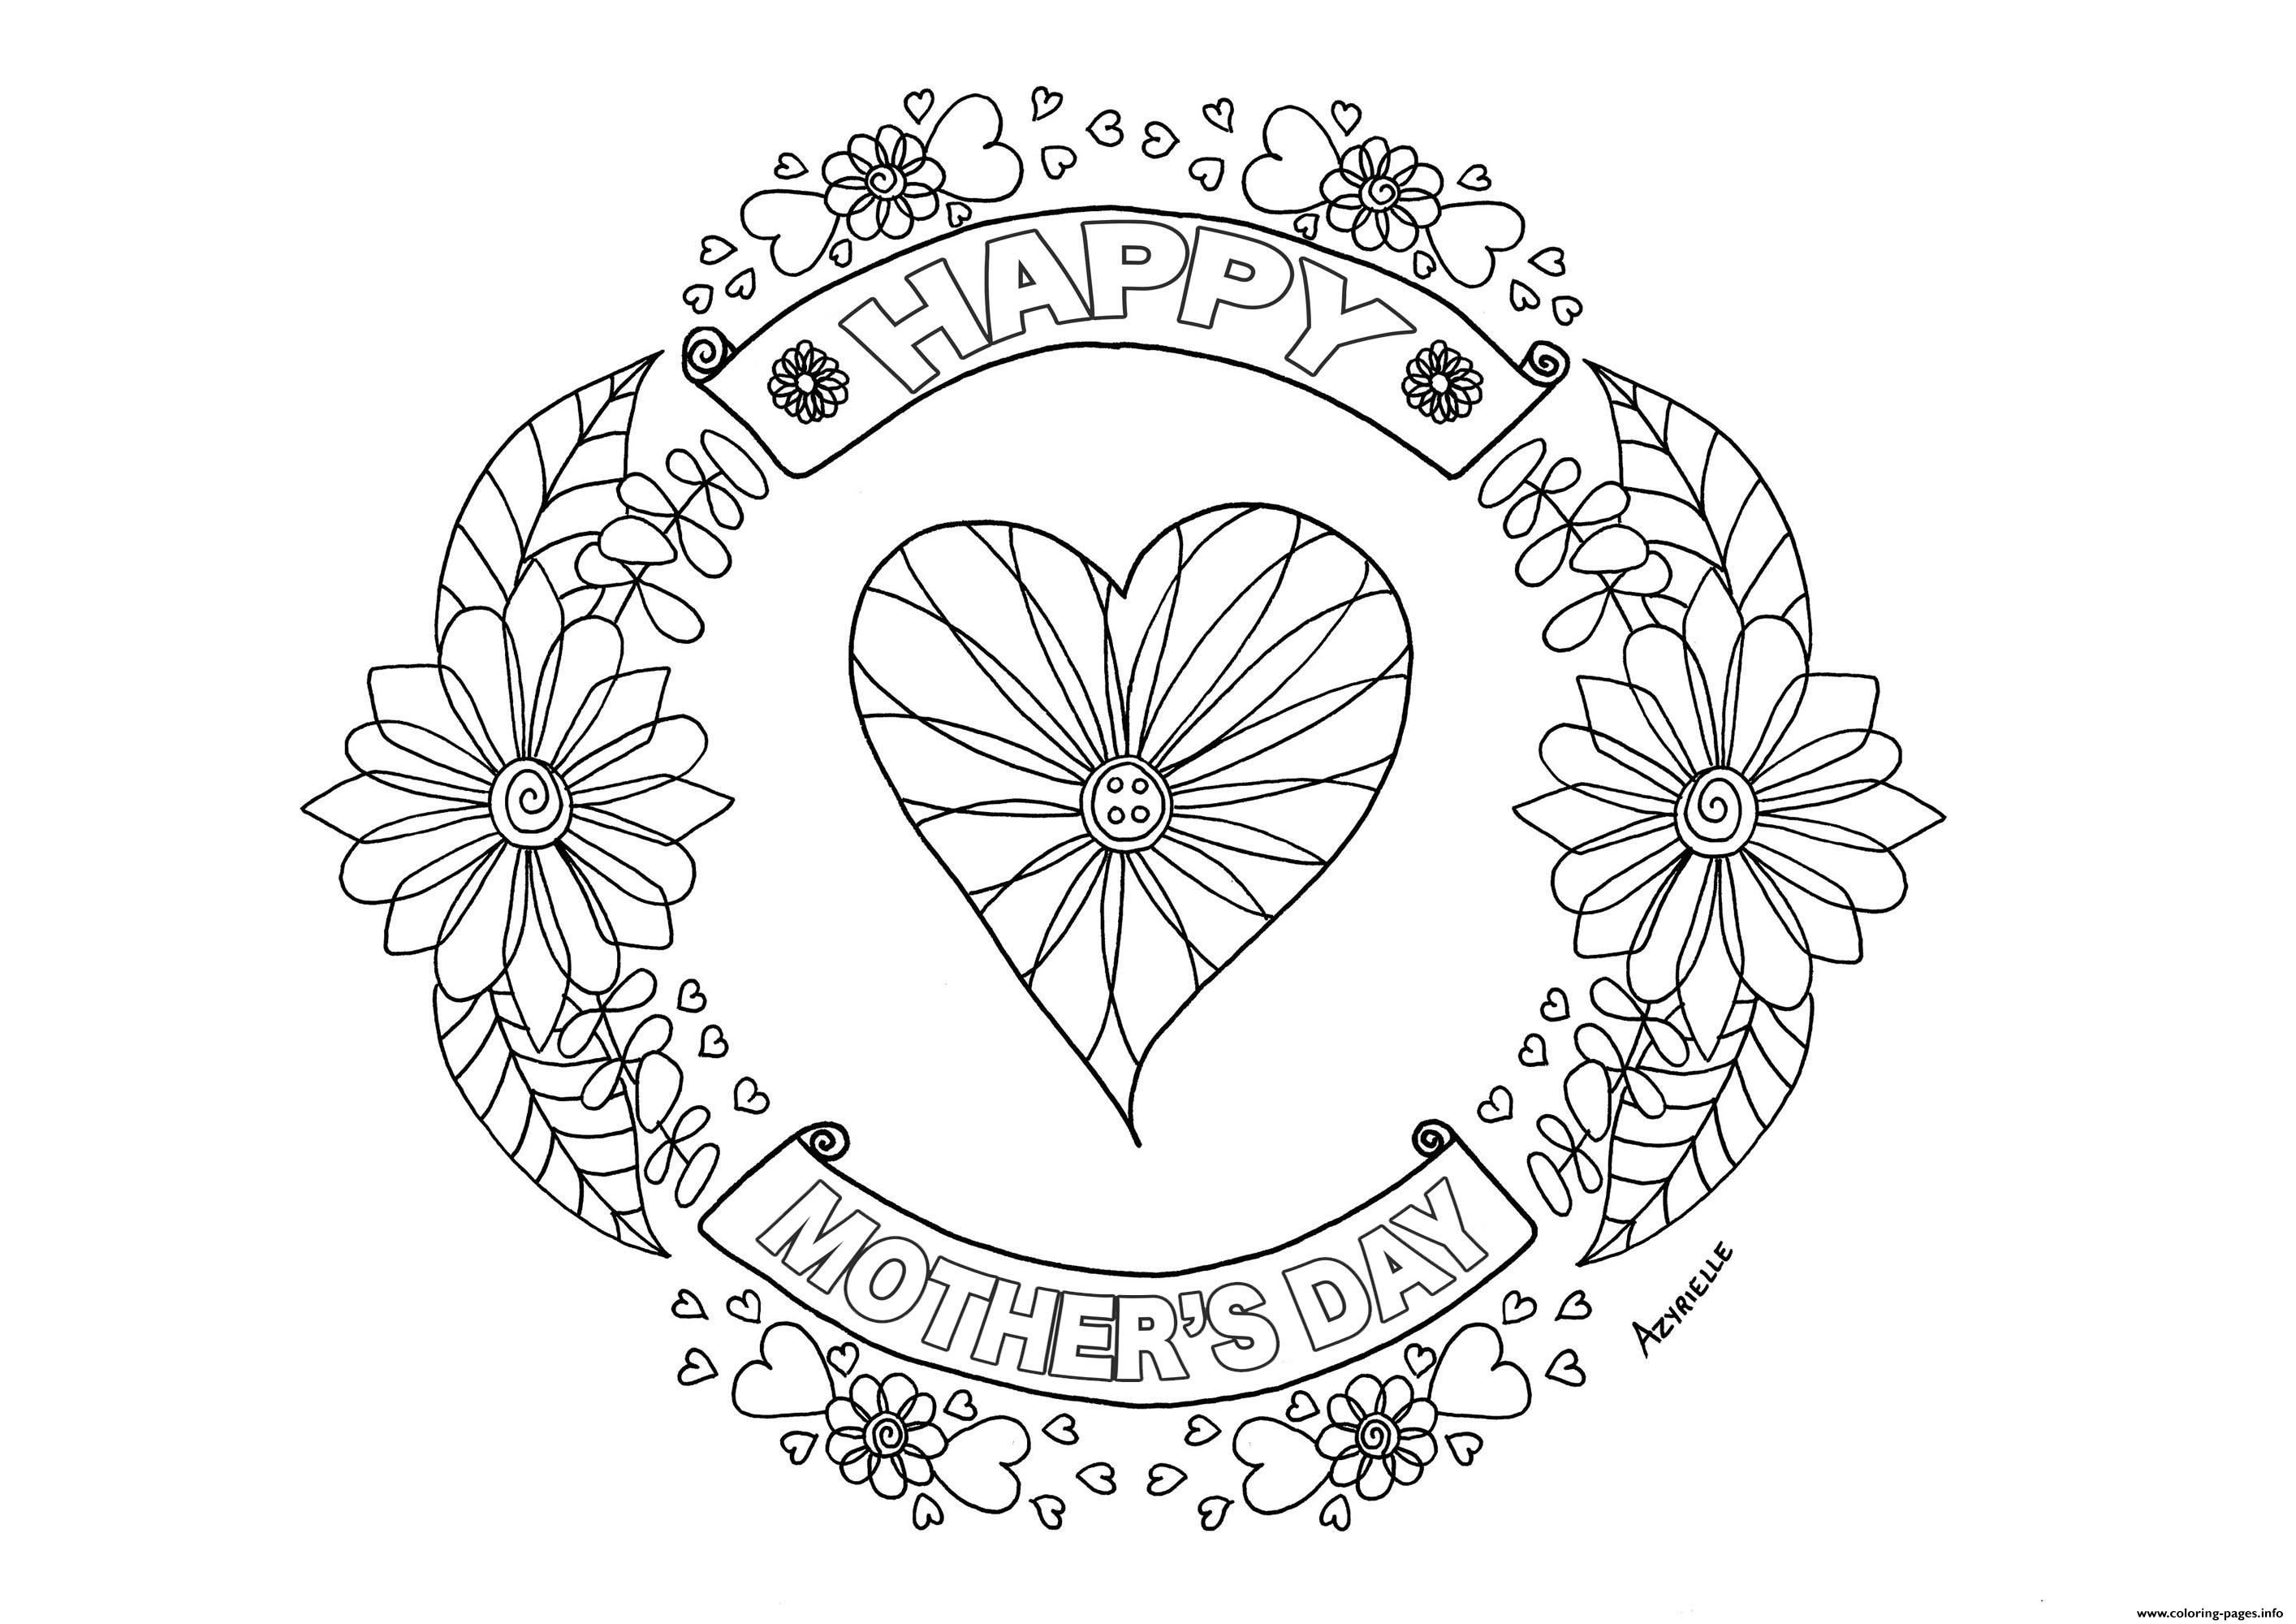 beautiful flower heart coloring pages adult mothers day heart by azyrielle coloring pages printable pages coloring heart beautiful flower